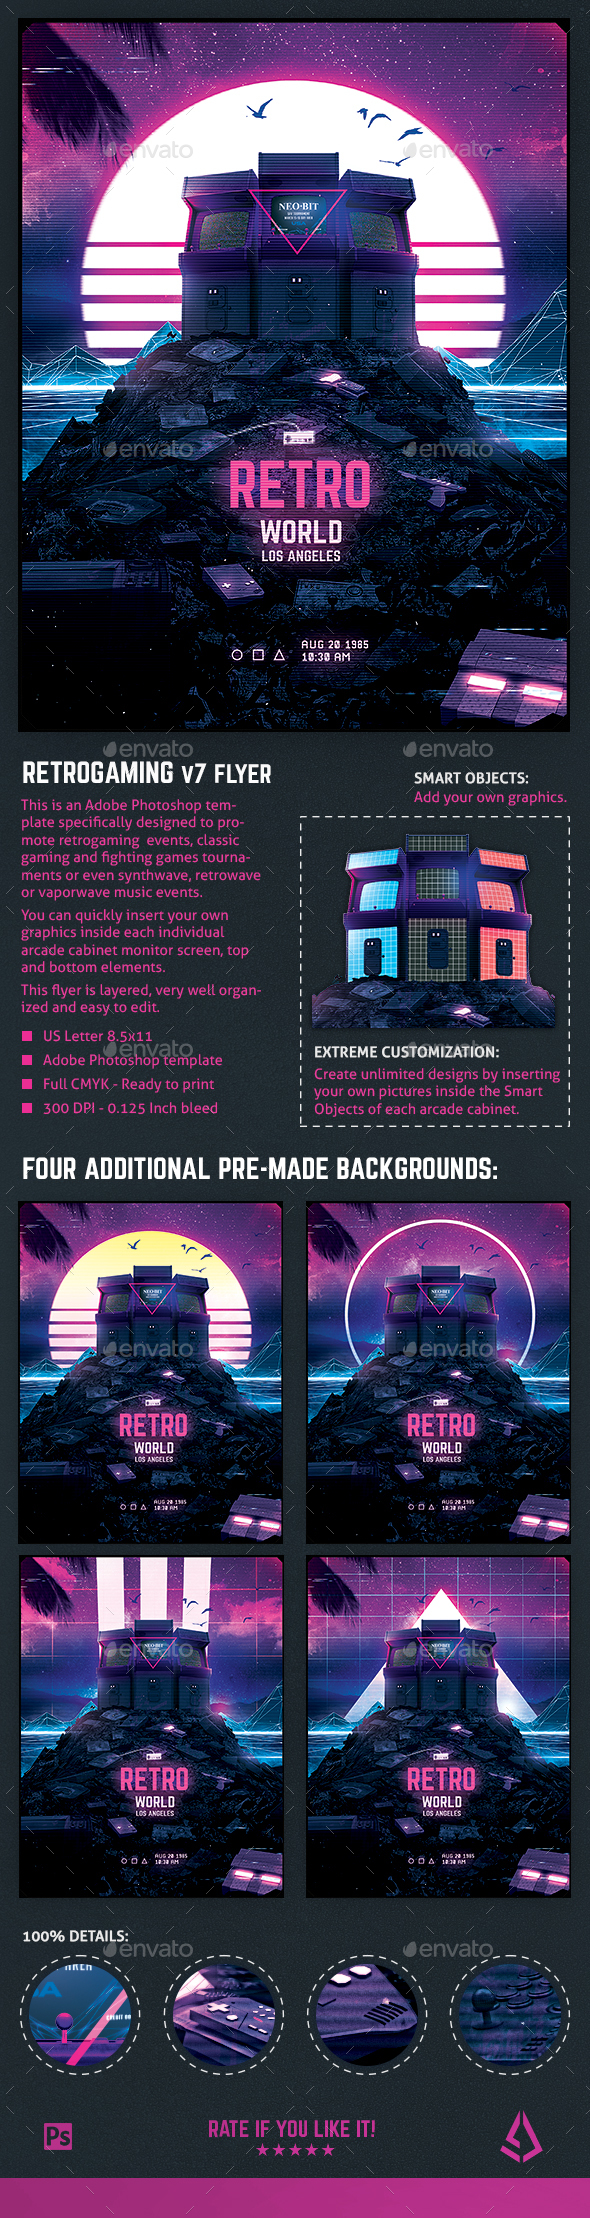 Retro Gaming Flyer v7 Synth World Neon Gaming Template - Miscellaneous Events